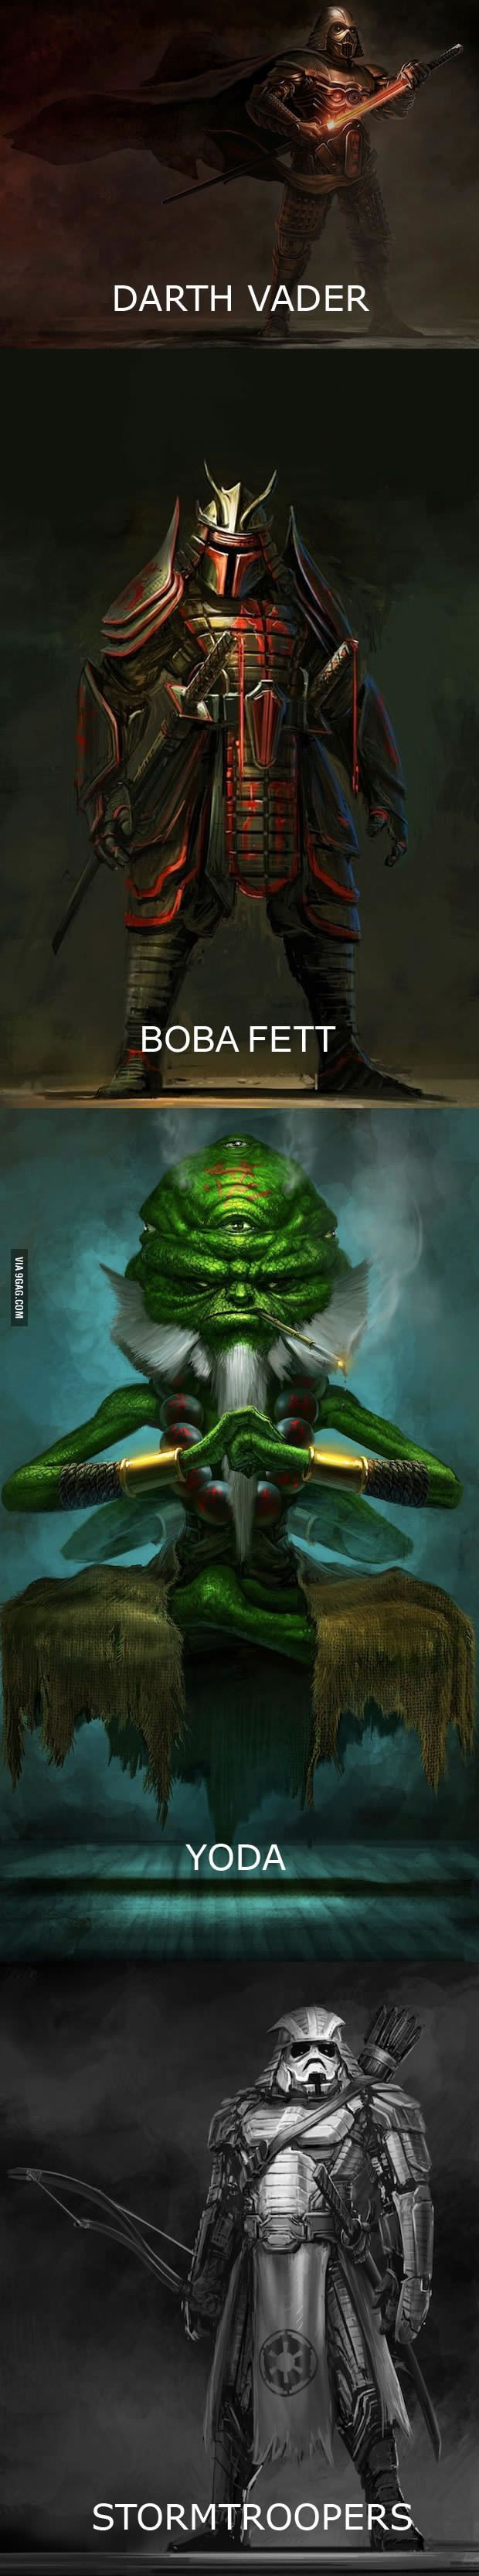 everything but yoda looks cool.